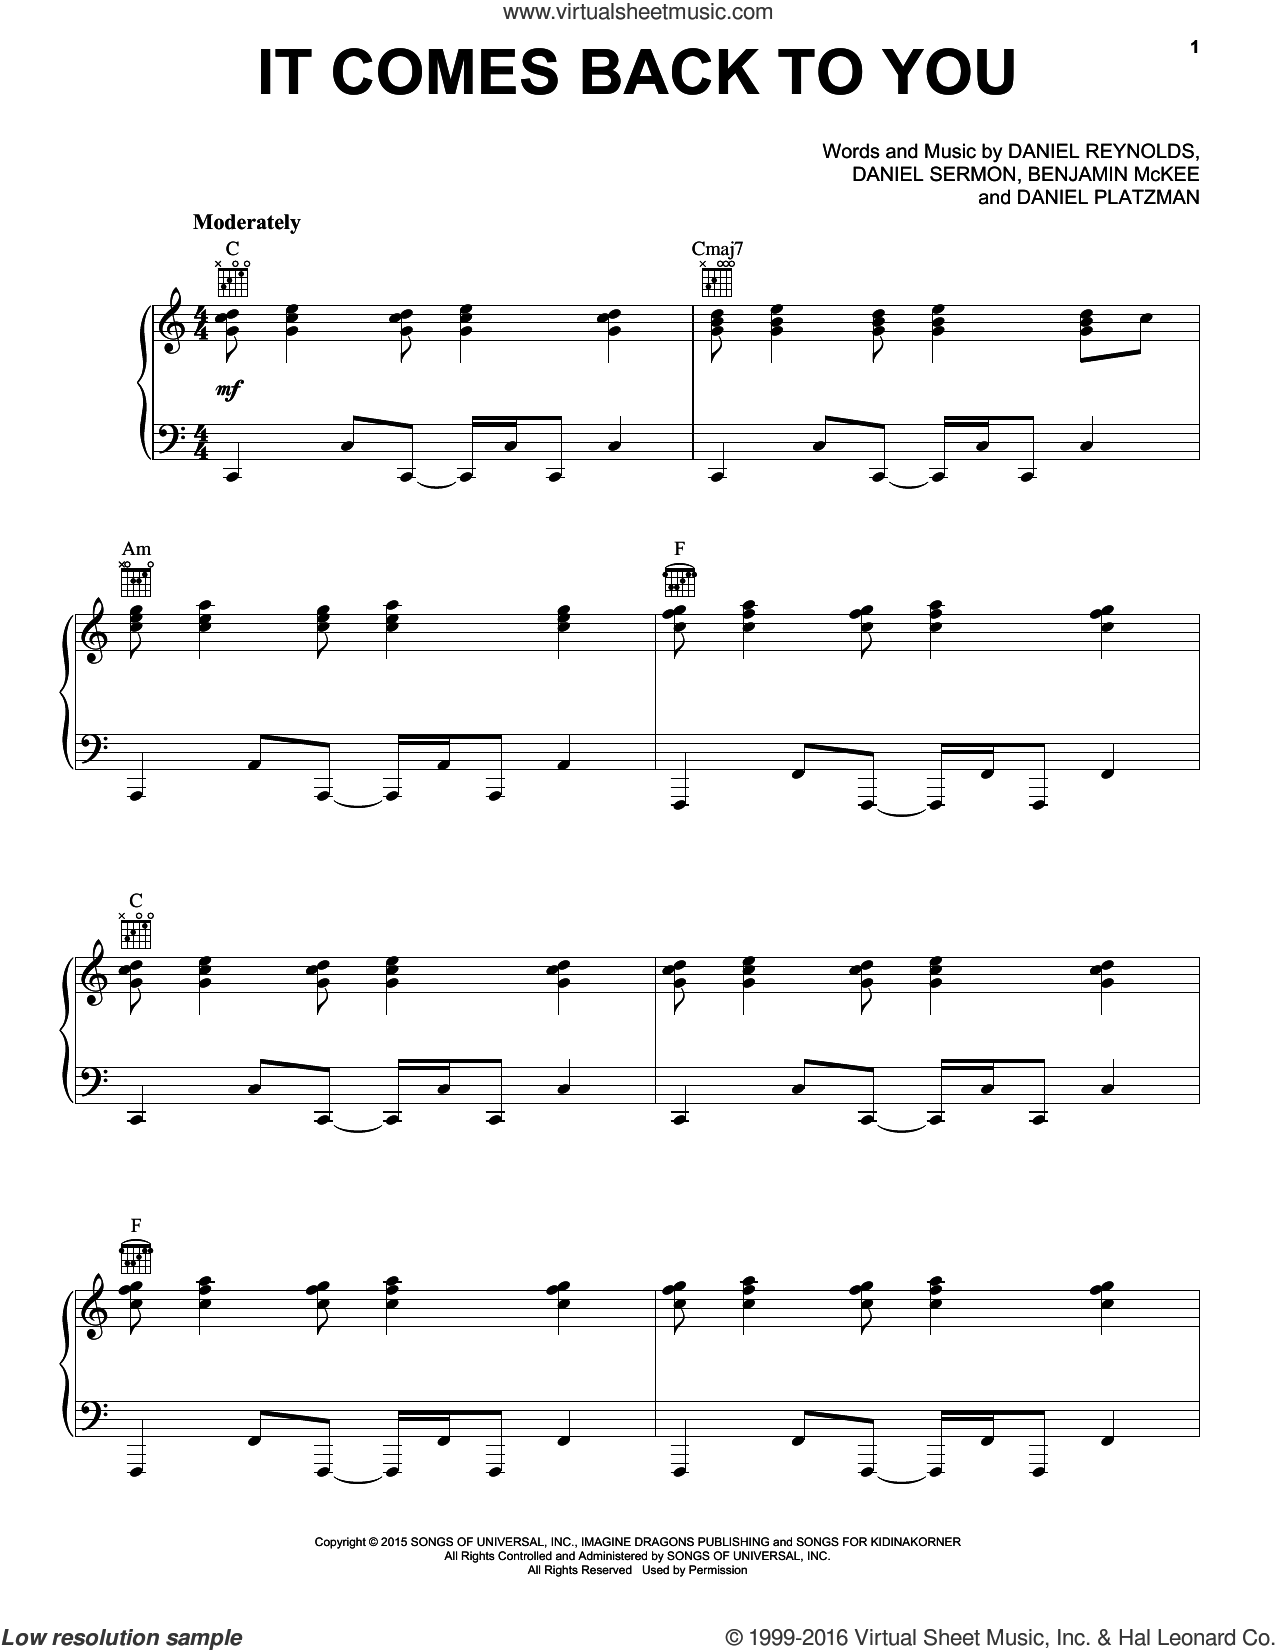 It Comes Back To You sheet music for voice, piano or guitar by Daniel Sermon, Imagine Dragons and Daniel Reynolds. Score Image Preview.